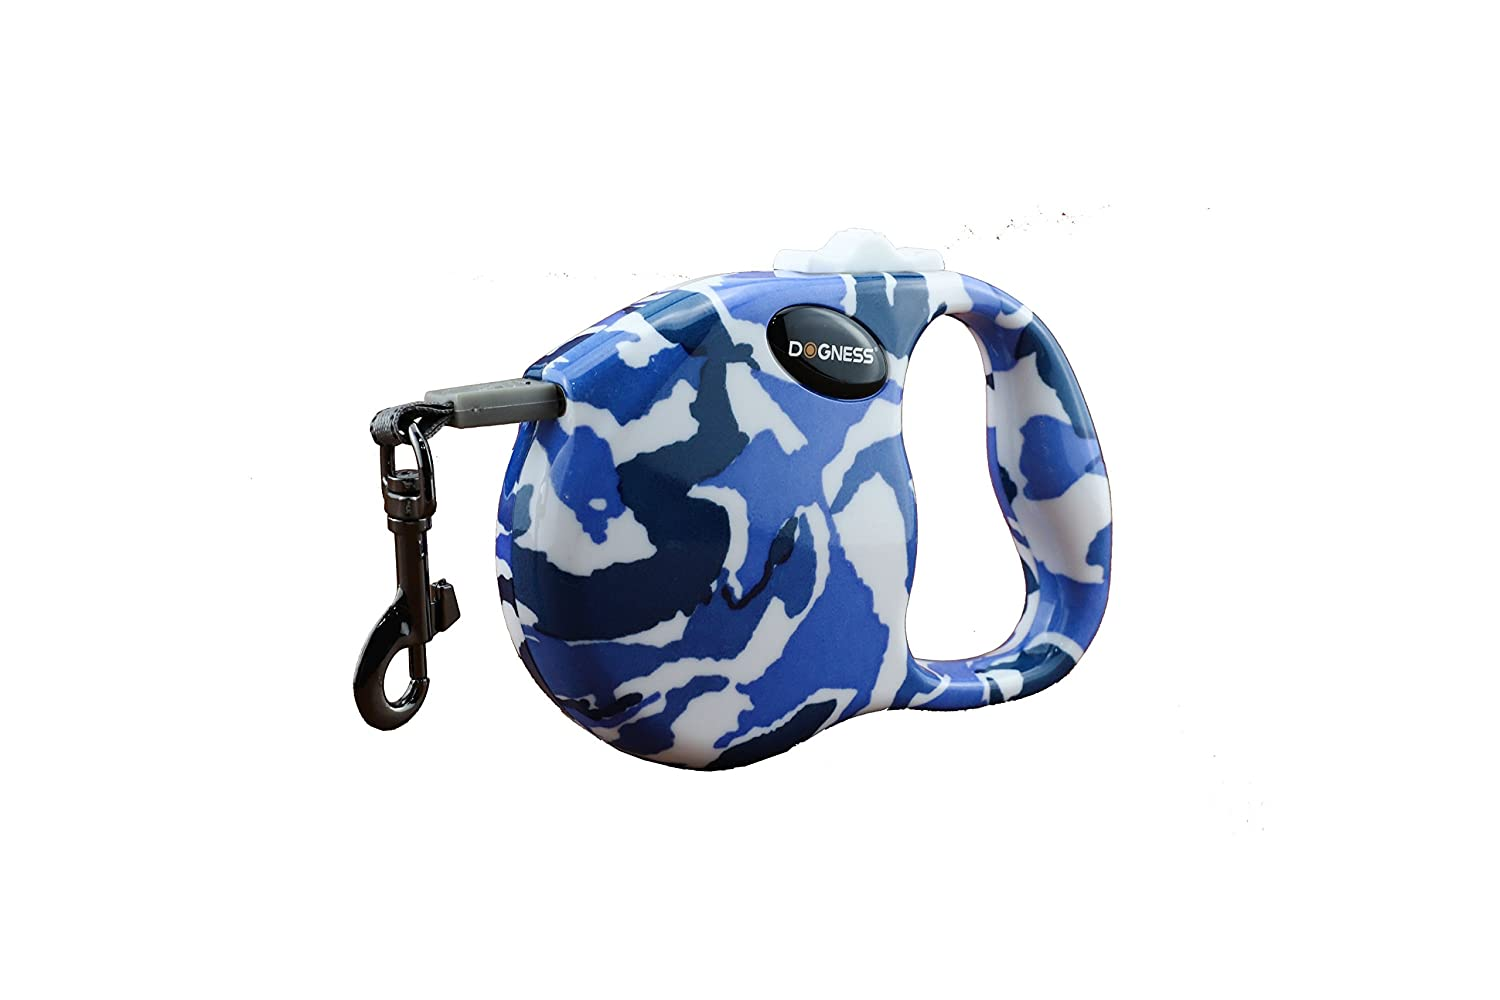 S DOGNESS Retractable Leash Fashion Range Size S(Suit for Dog 25lbs or Below), Length 3M, Simple Control and Super Durable Camo